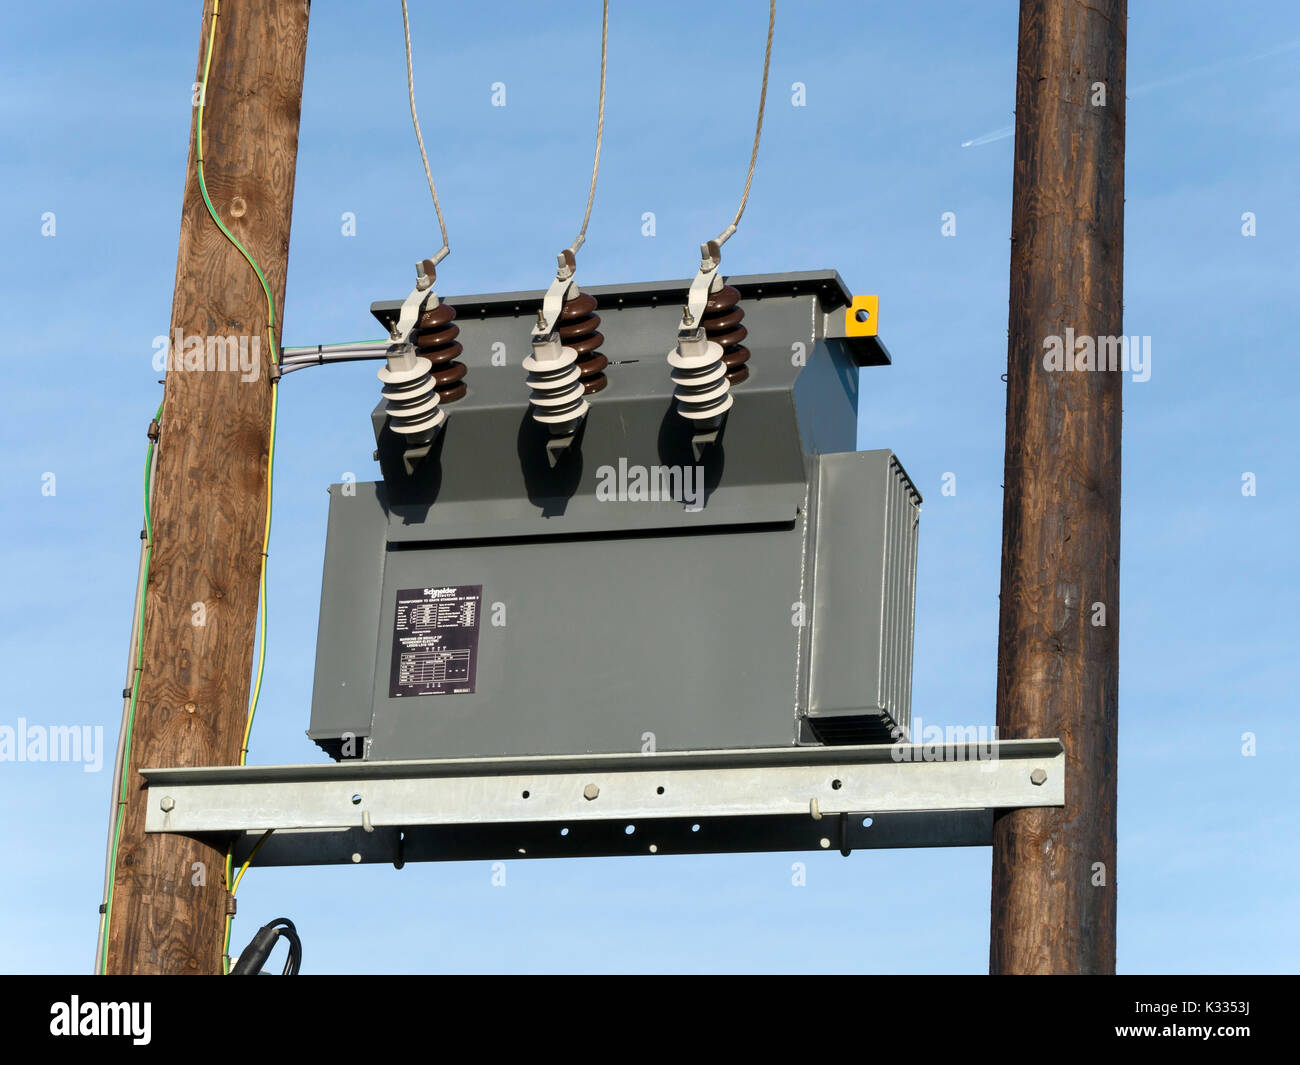 High Voltage Transformer Stock Photos Schneider Electric Wiring Diagram Pole Mounted Electricity Distribution On Uk National Grid Image